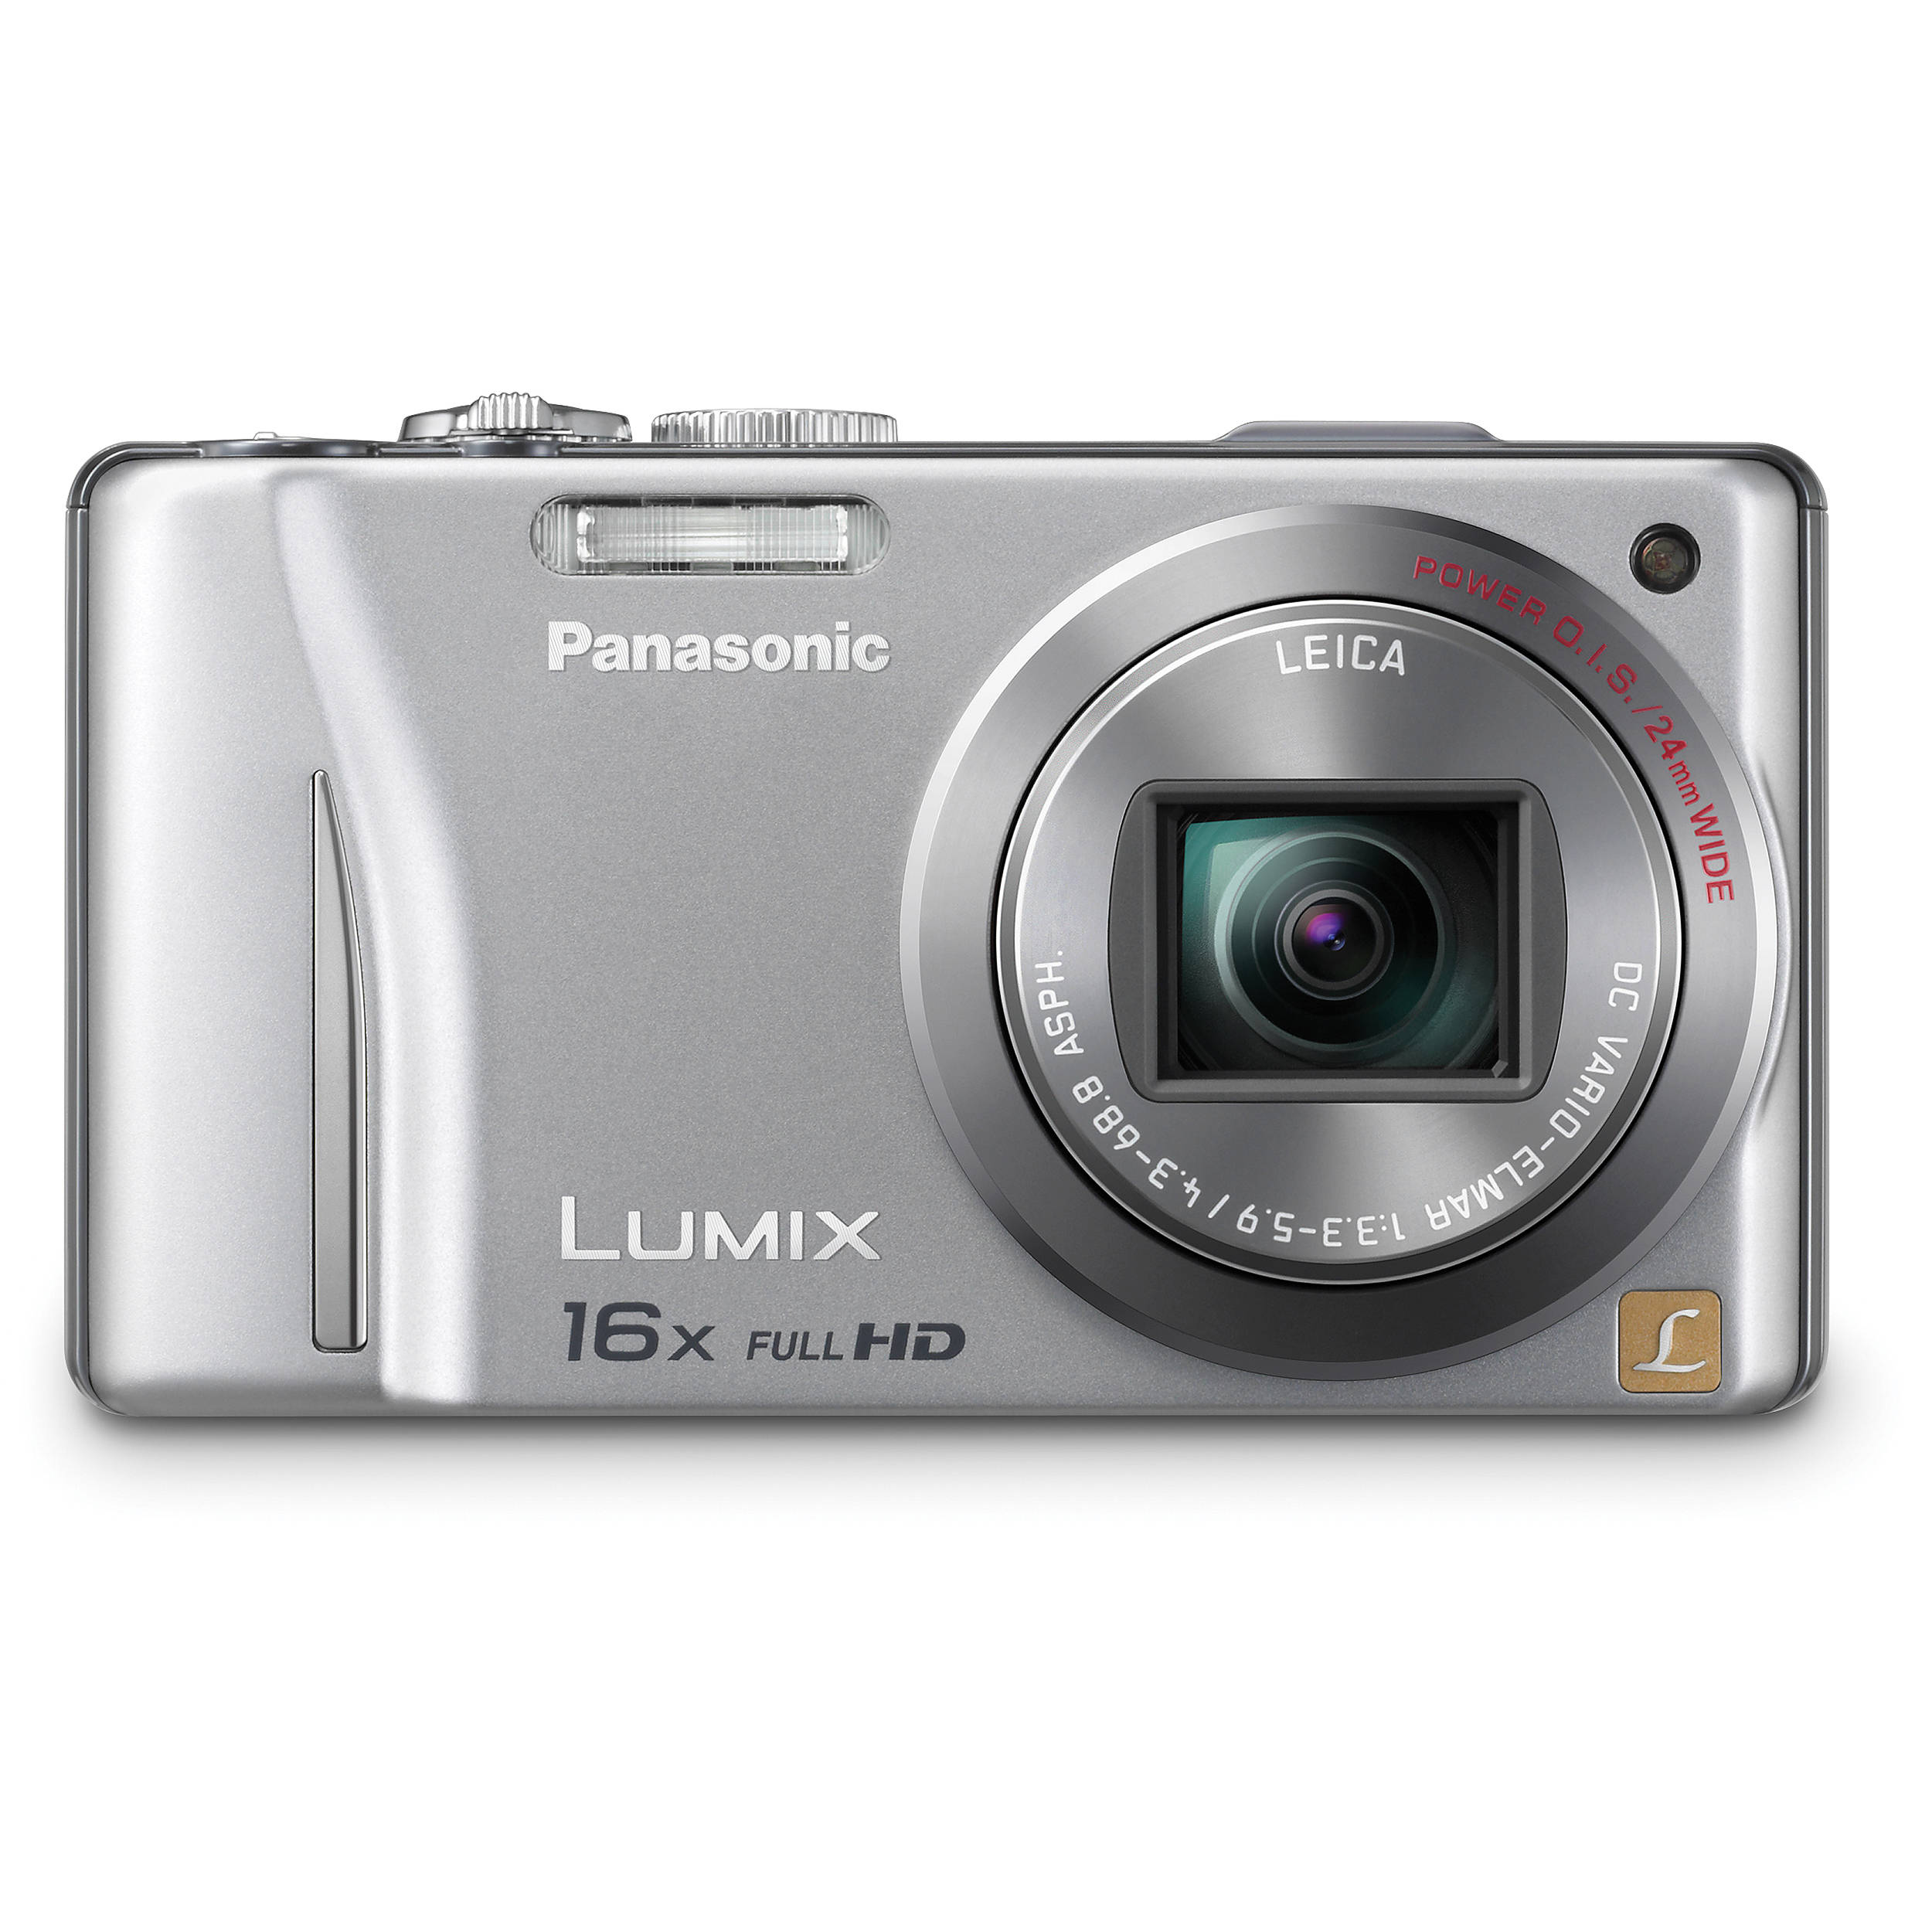 panasonic dmc zs10 user guide today manual guide trends sample u2022 rh brookejasmine co Panasonic Lumix Dmc- Zs40 Panasonic Lumix DMC ZS20 Coppying Pictures to Card